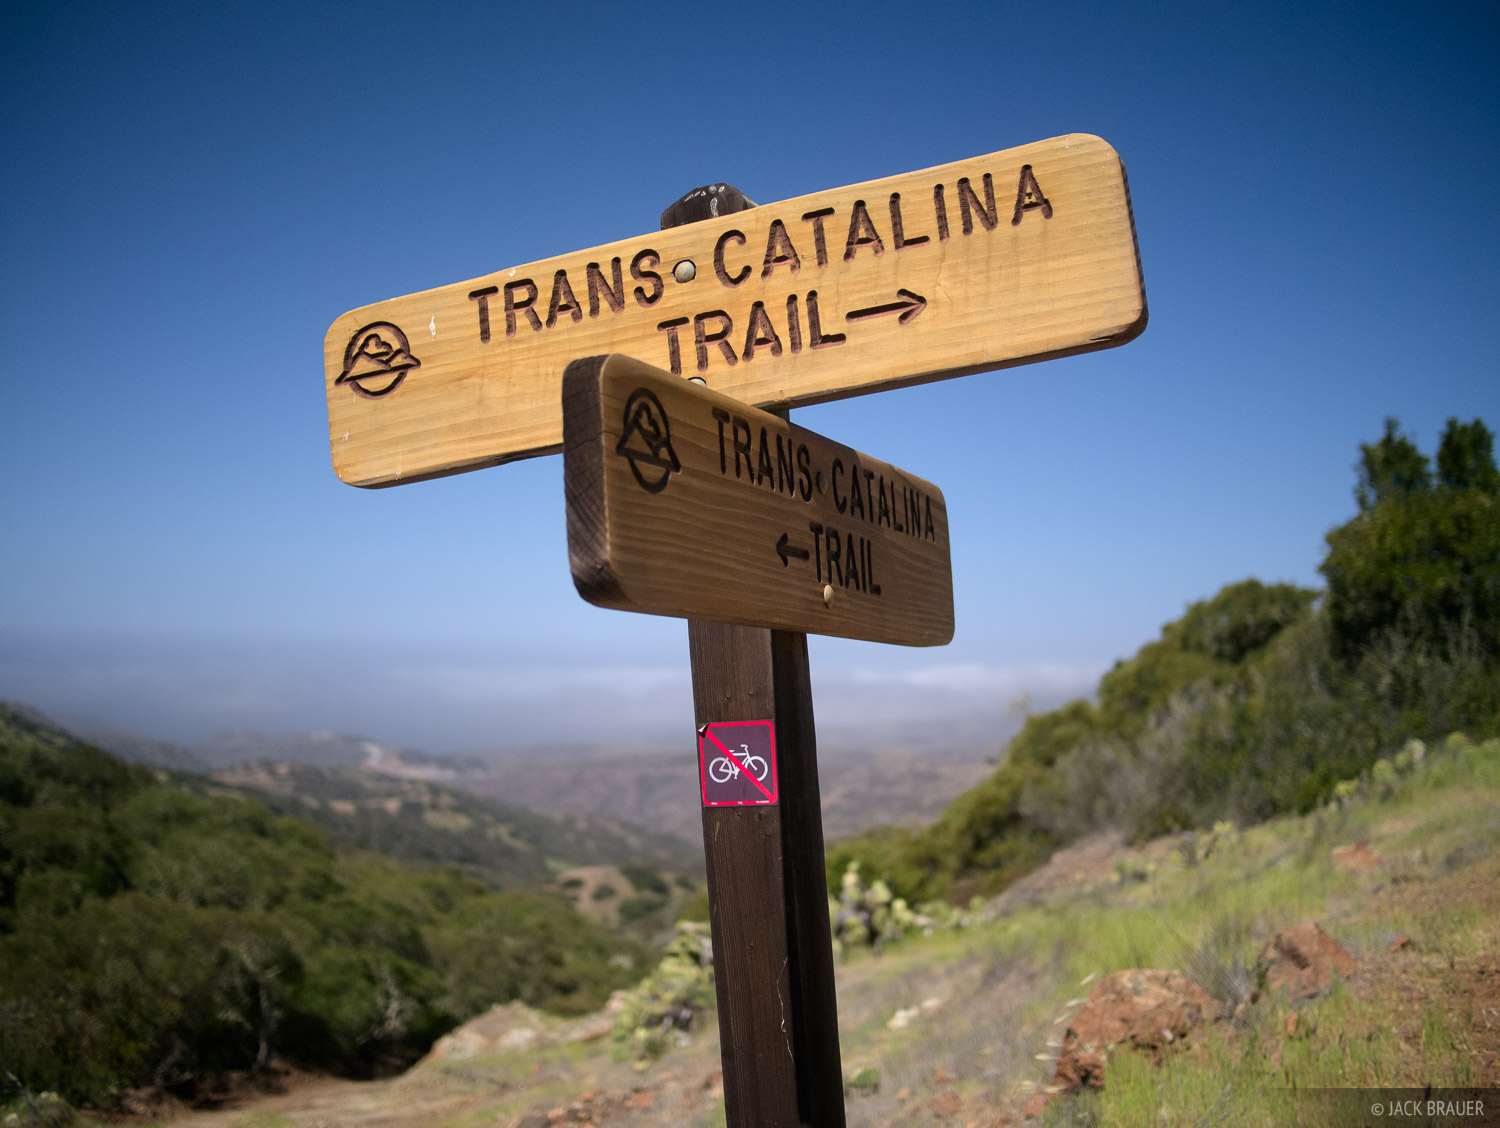 Trans Catalina Trail, Catalina Island, California, photo